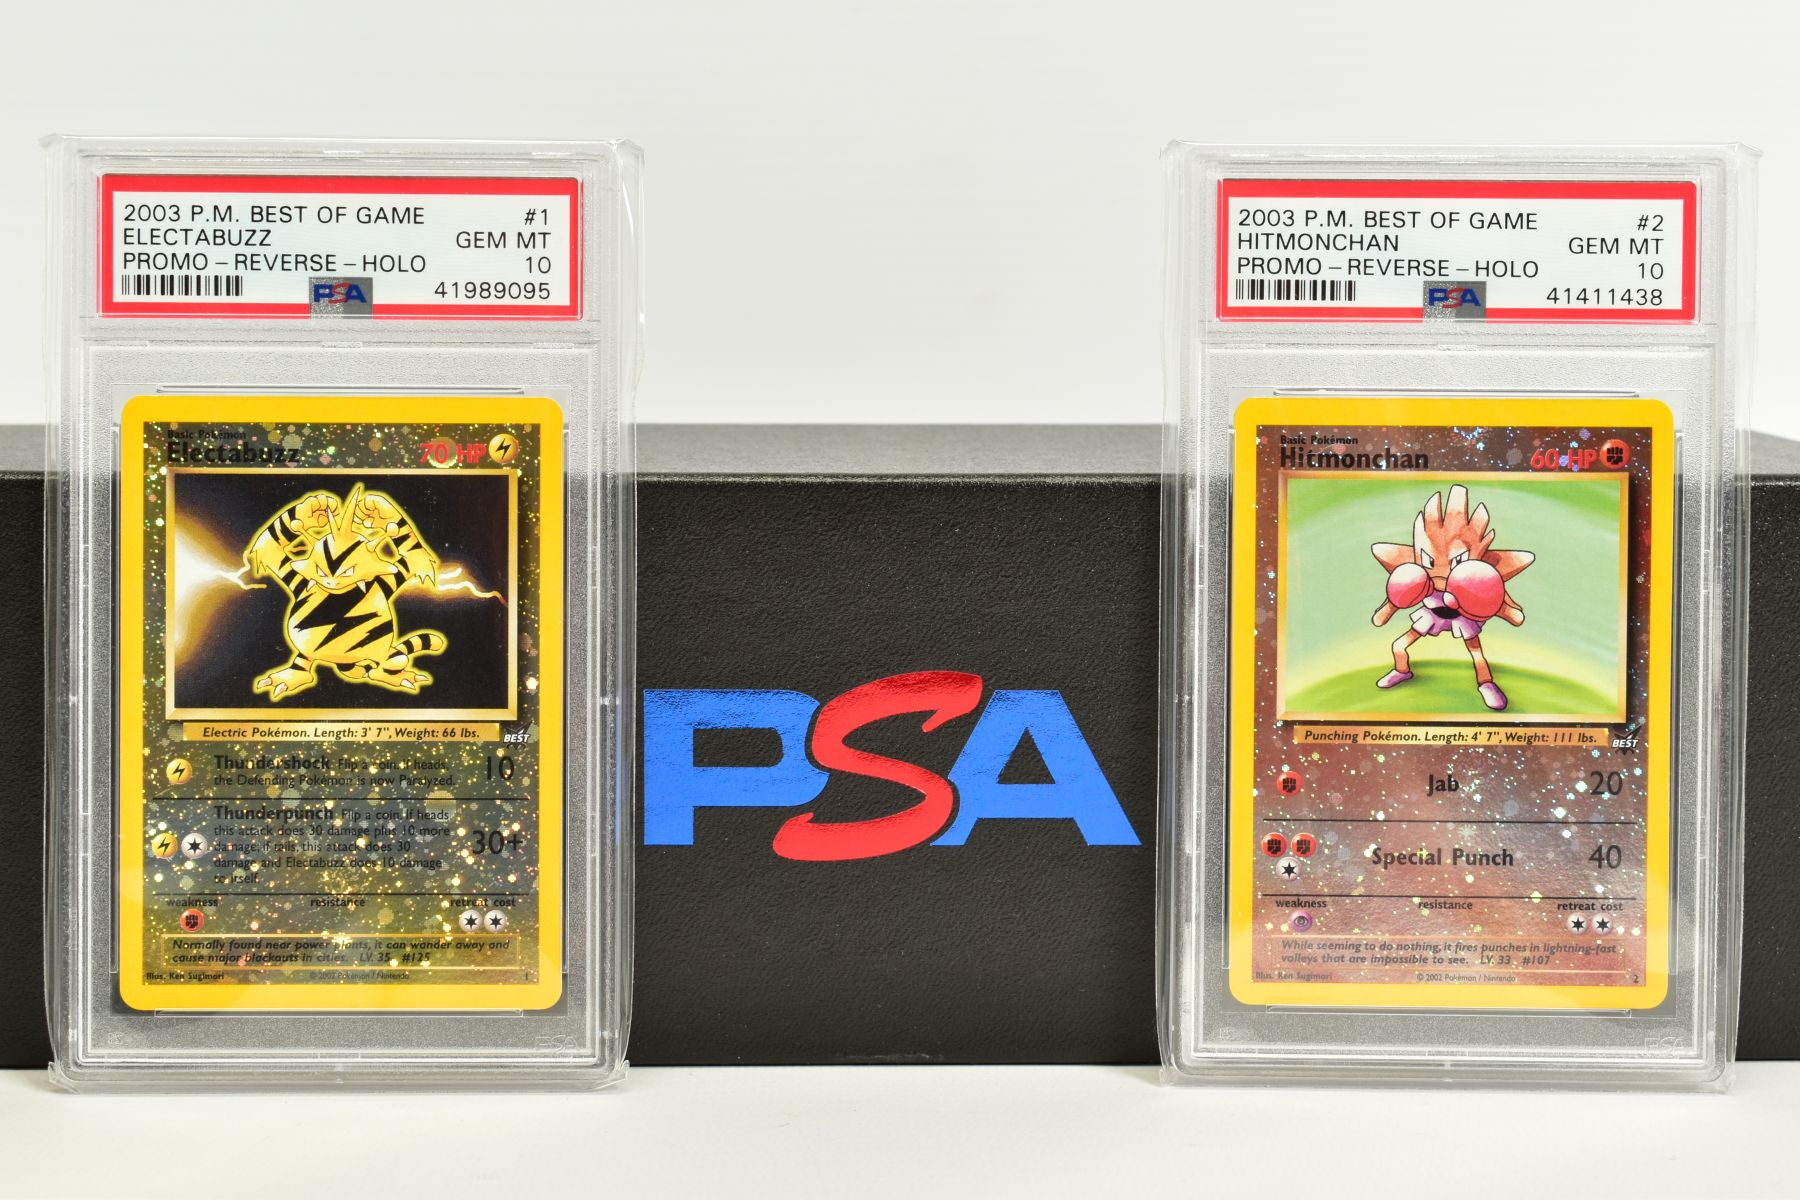 A QUANTITY OF PSA GRADED POKEMON BEST OF GAME CARDS, all are graded GEM MINT 10 and are sealed in